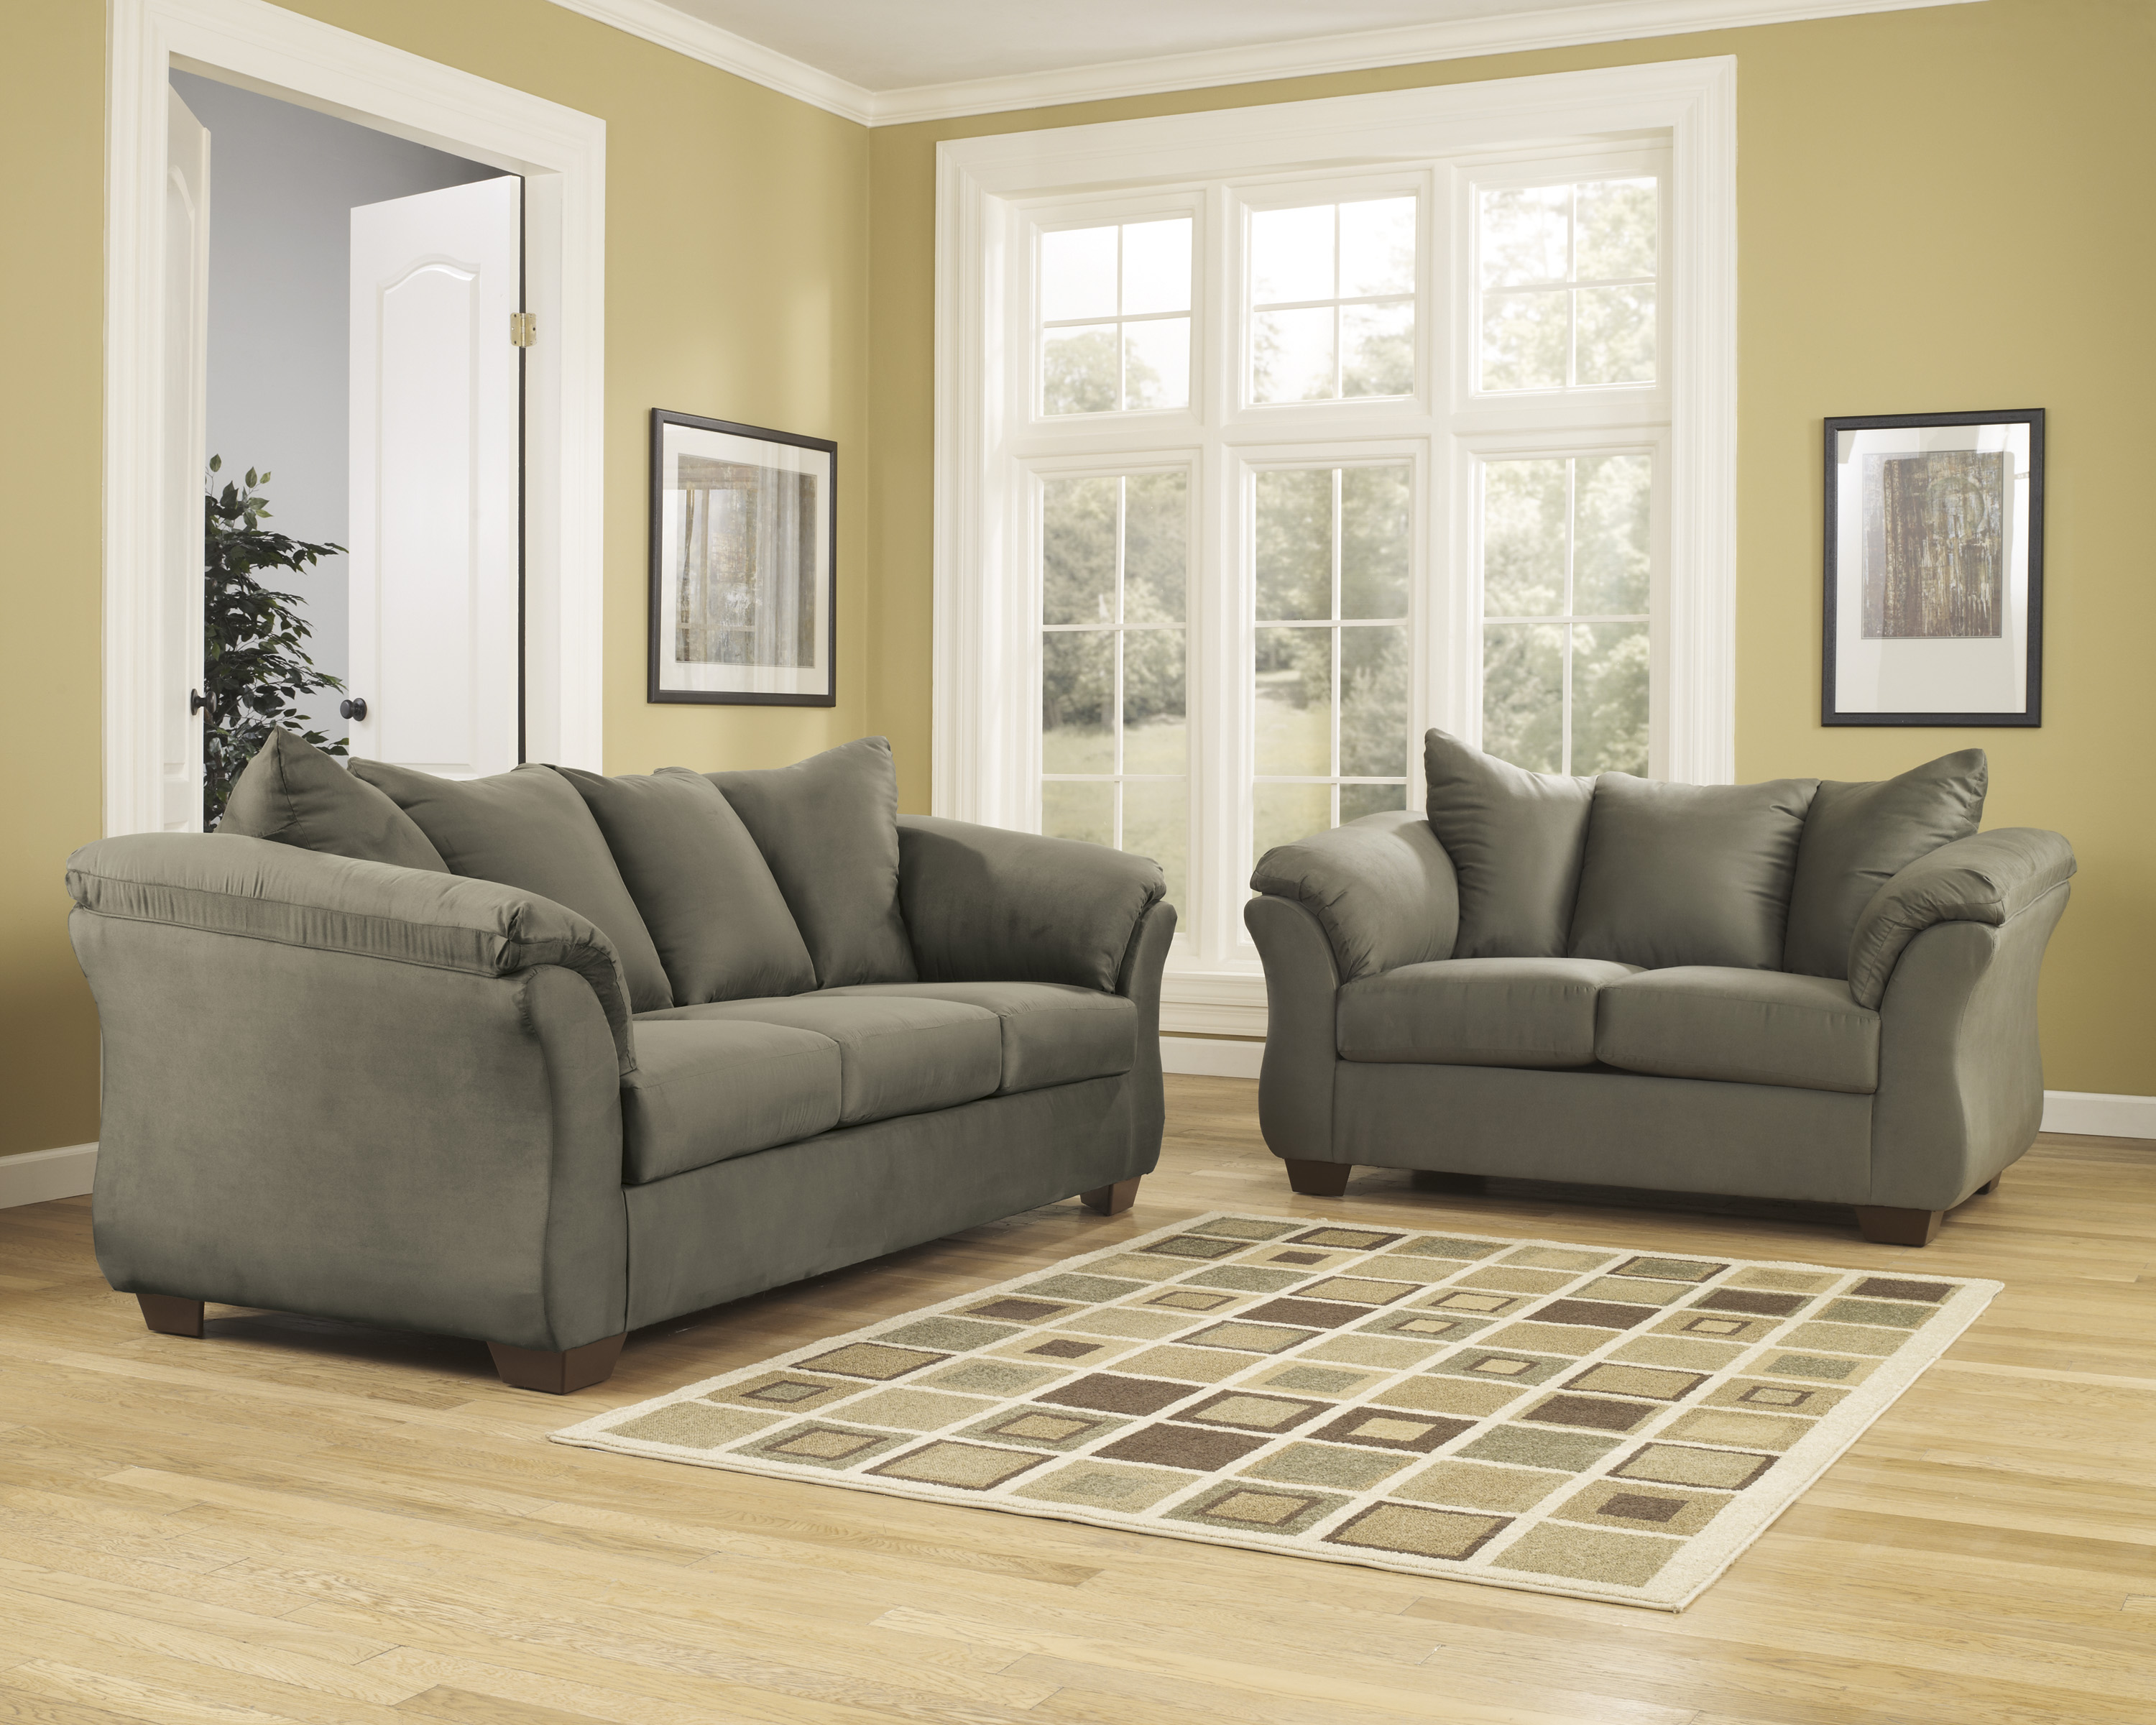 blog types rent to stores products own top of different bunk and brands furniture beds retaildeal